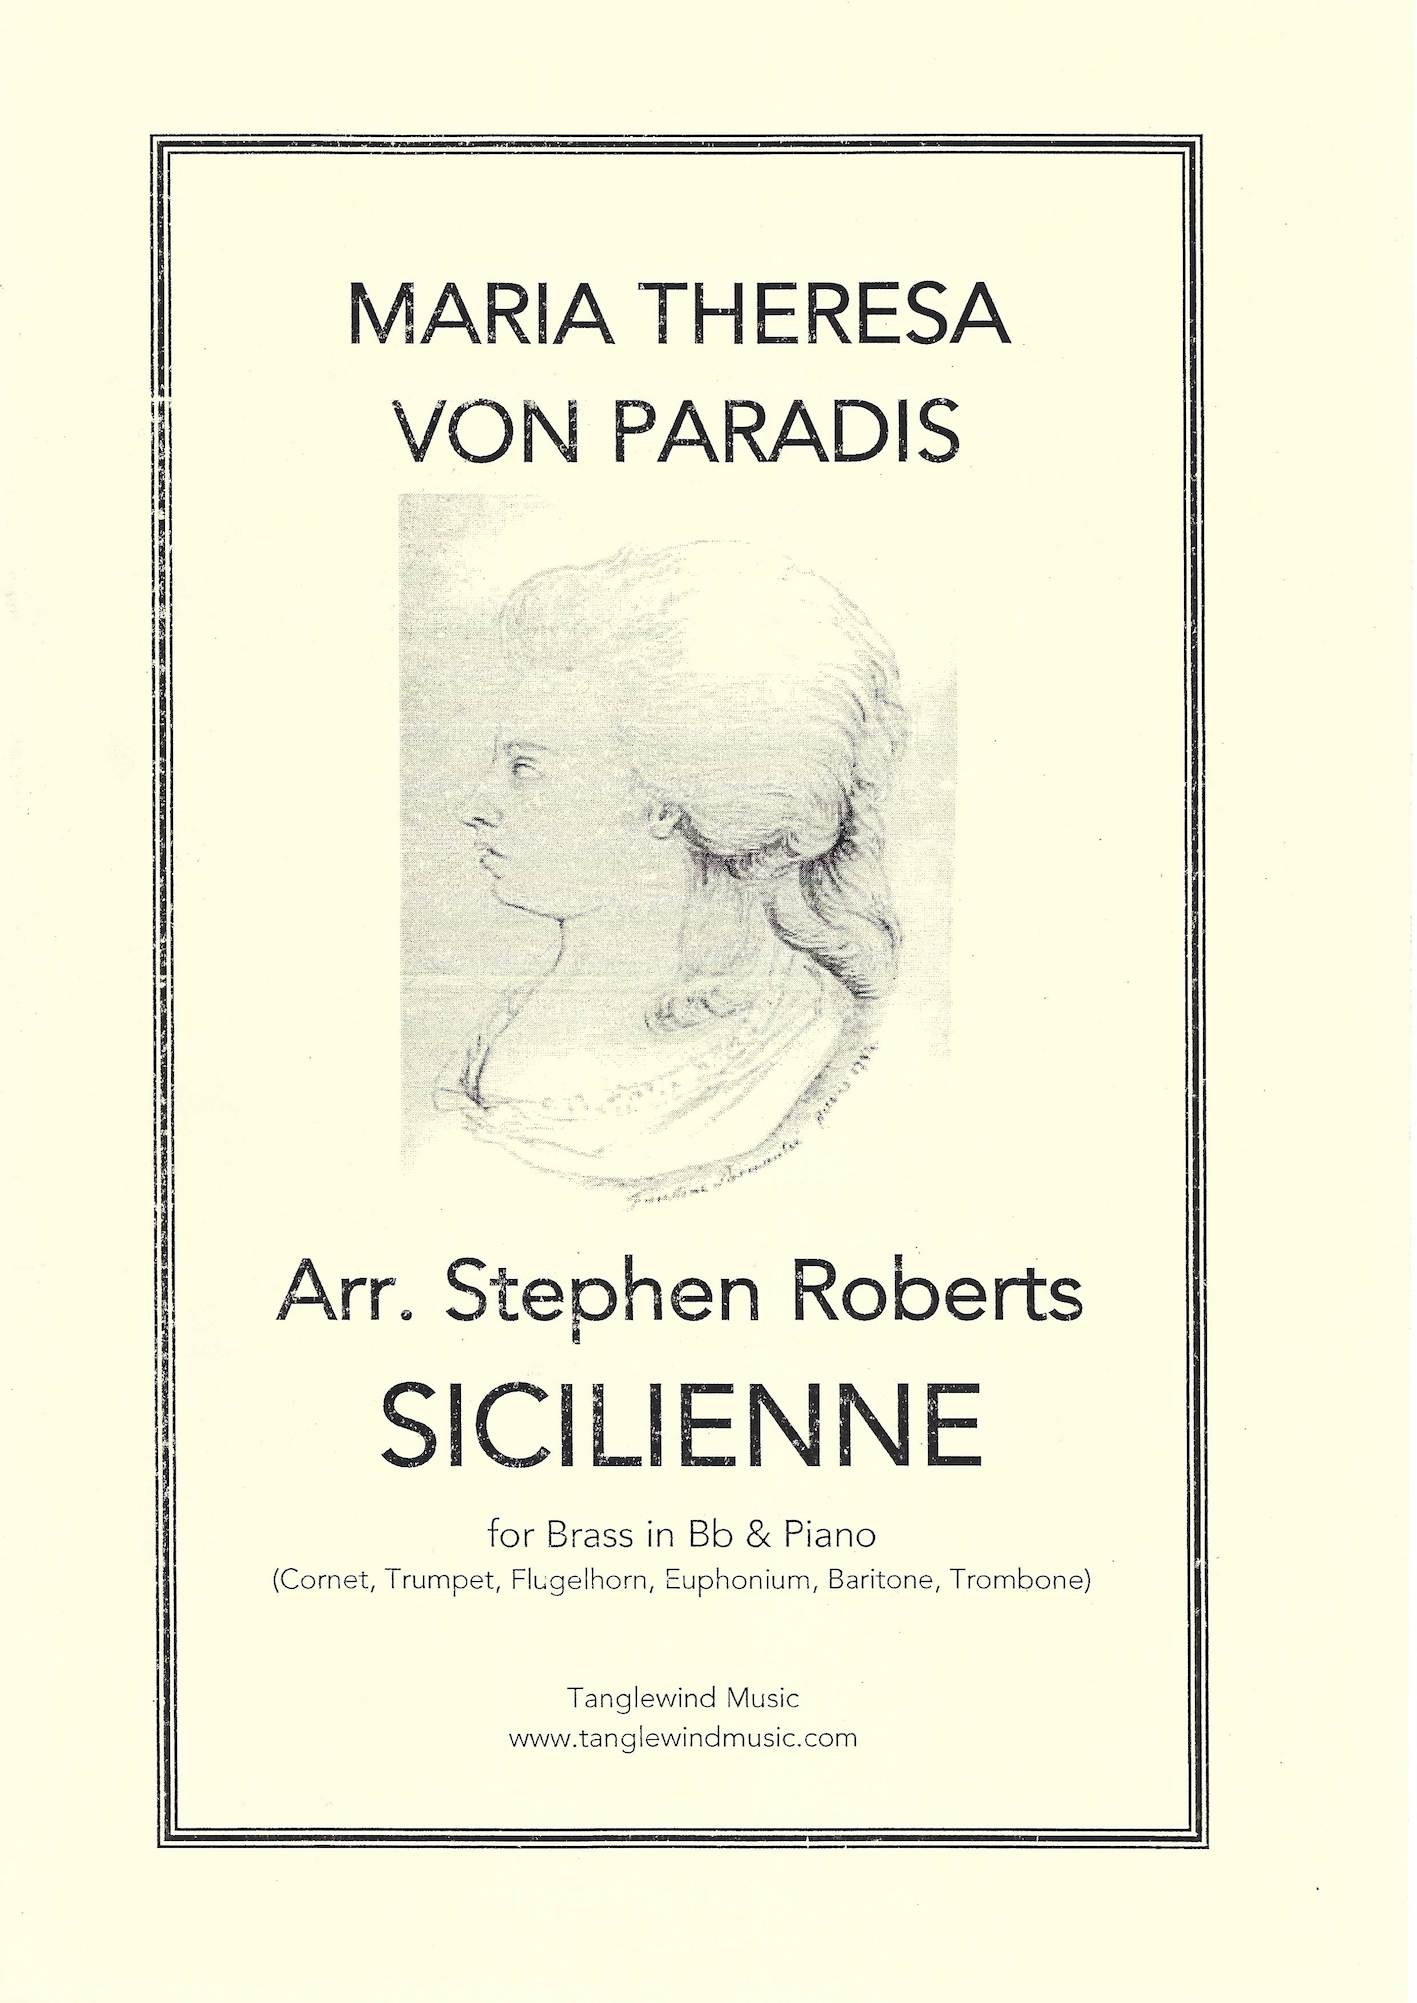 Sicilienne - Maria Theresa Von Paradis Arr. S. Roberts - Brass (in Bb) solo and Piano